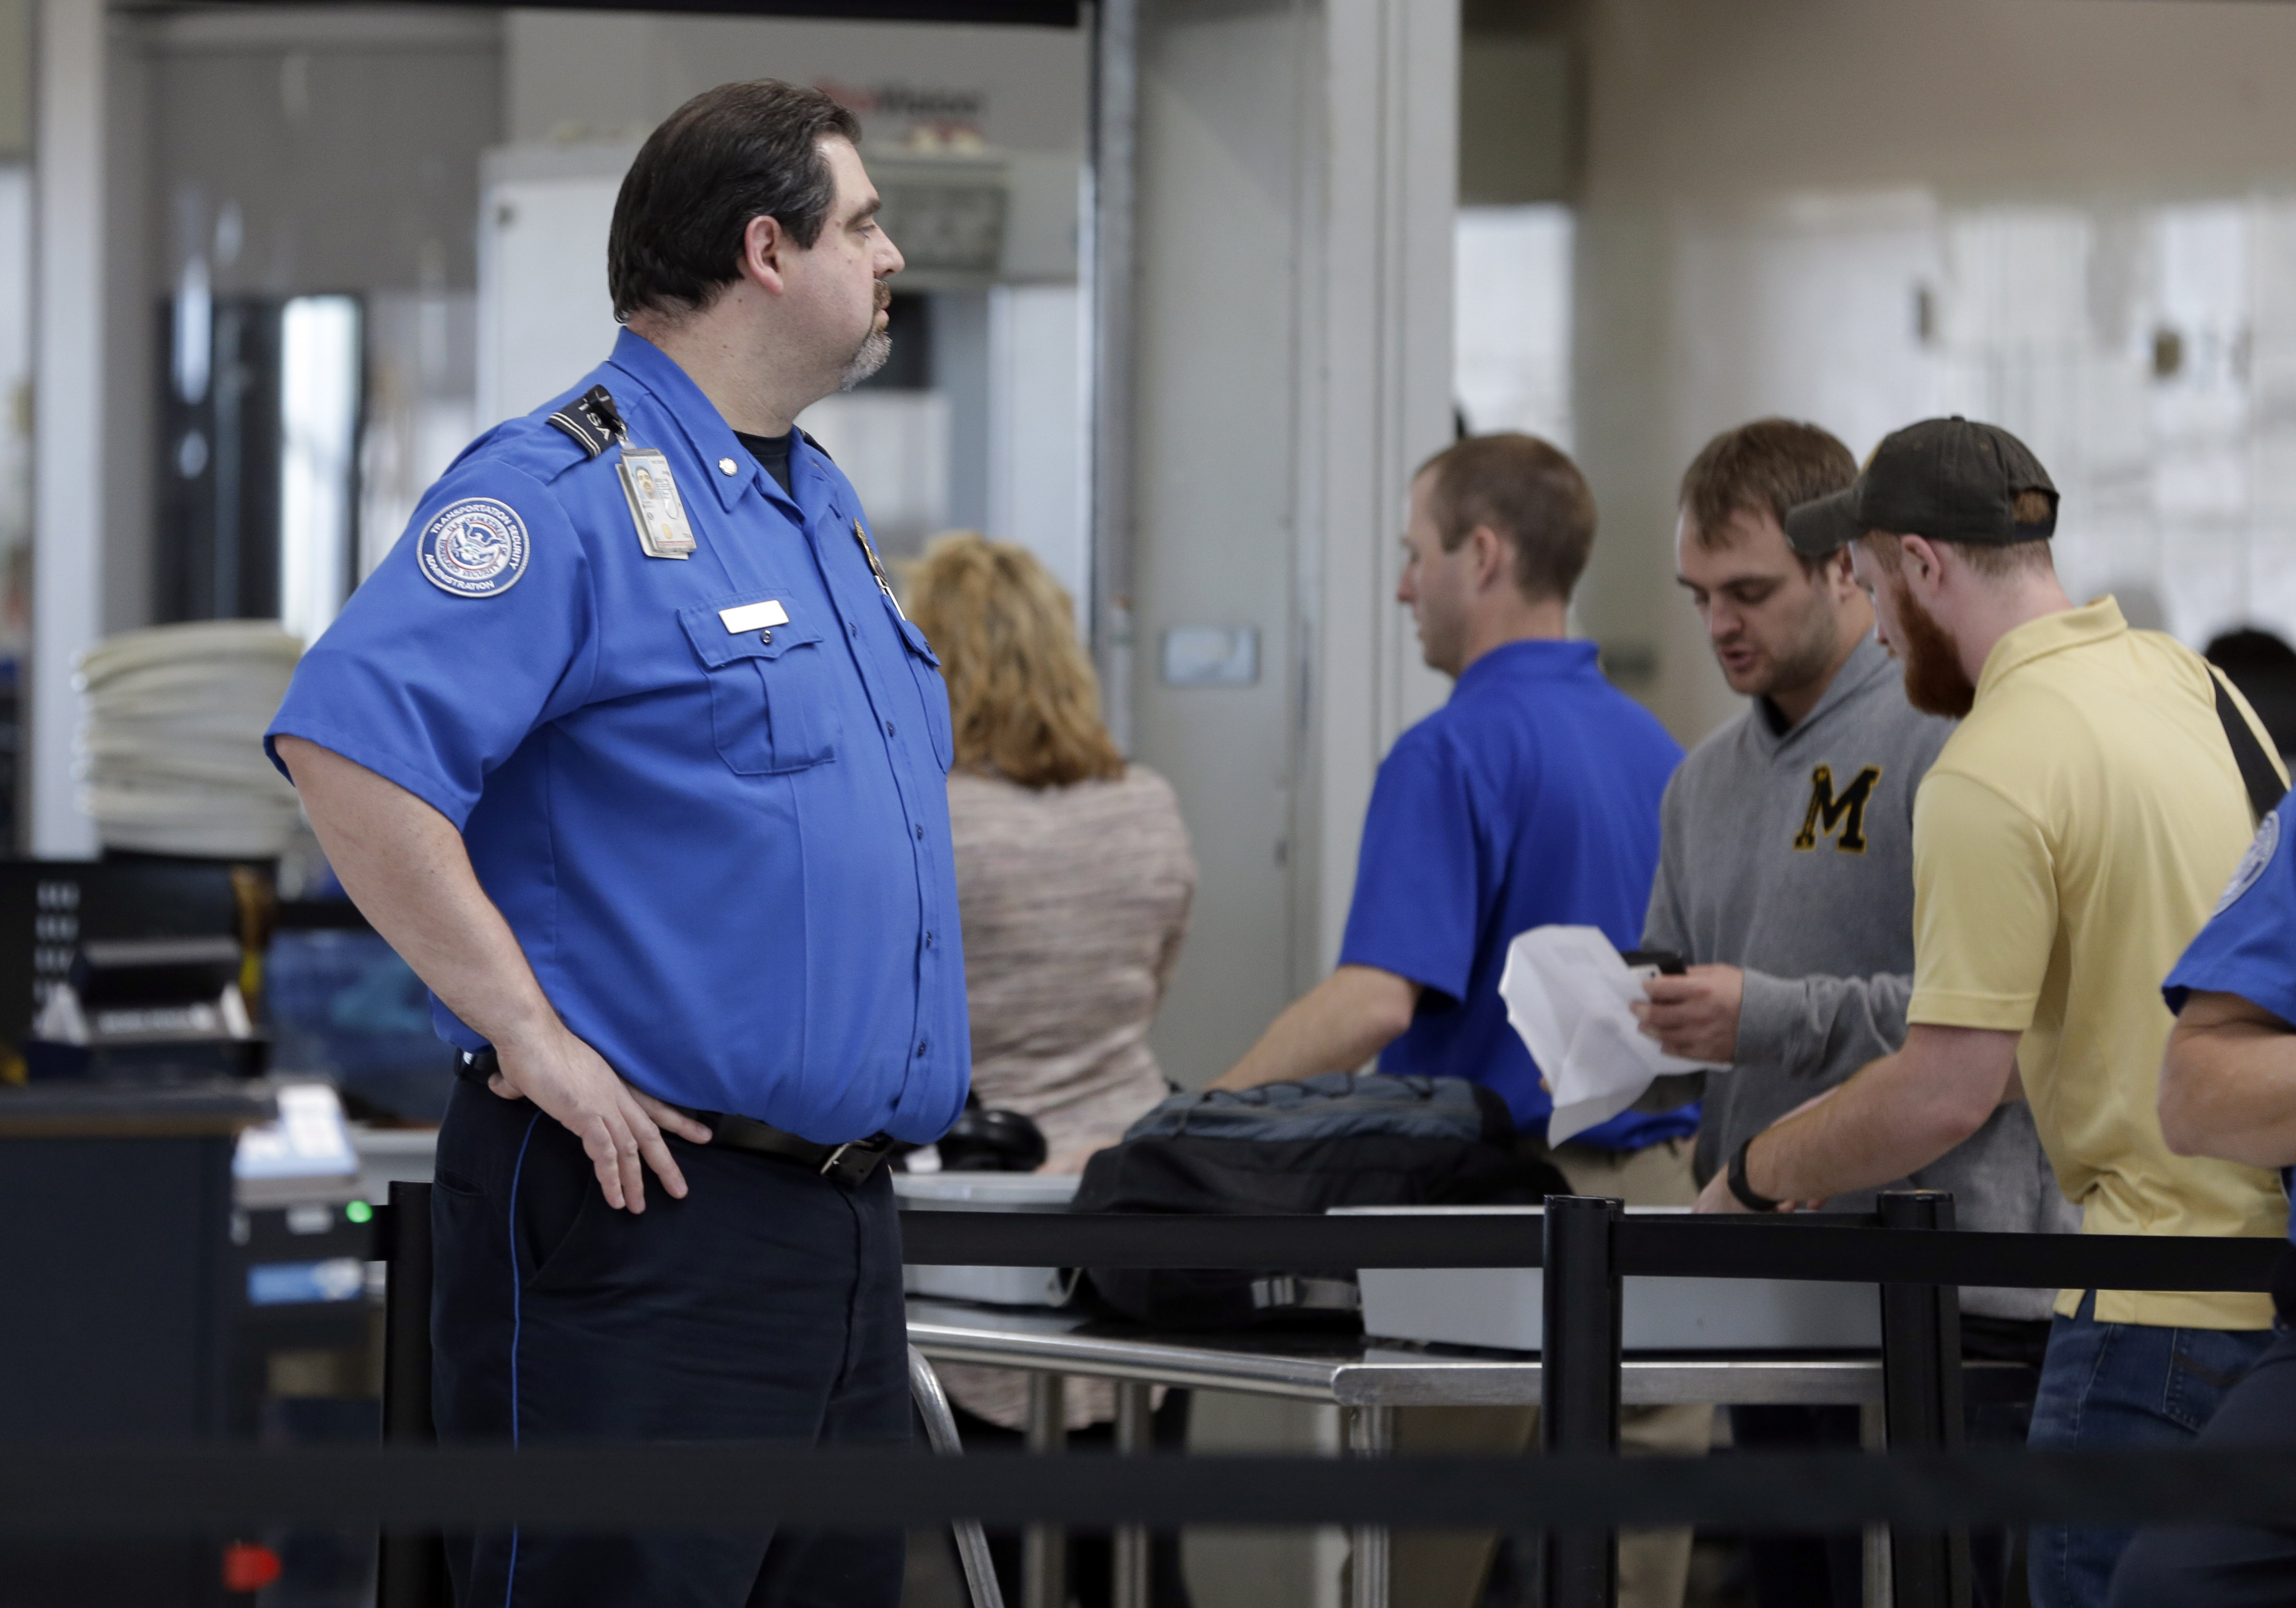 Man Causes Airport Security Concern After Passing Security With Brothers Passport PA 26054906